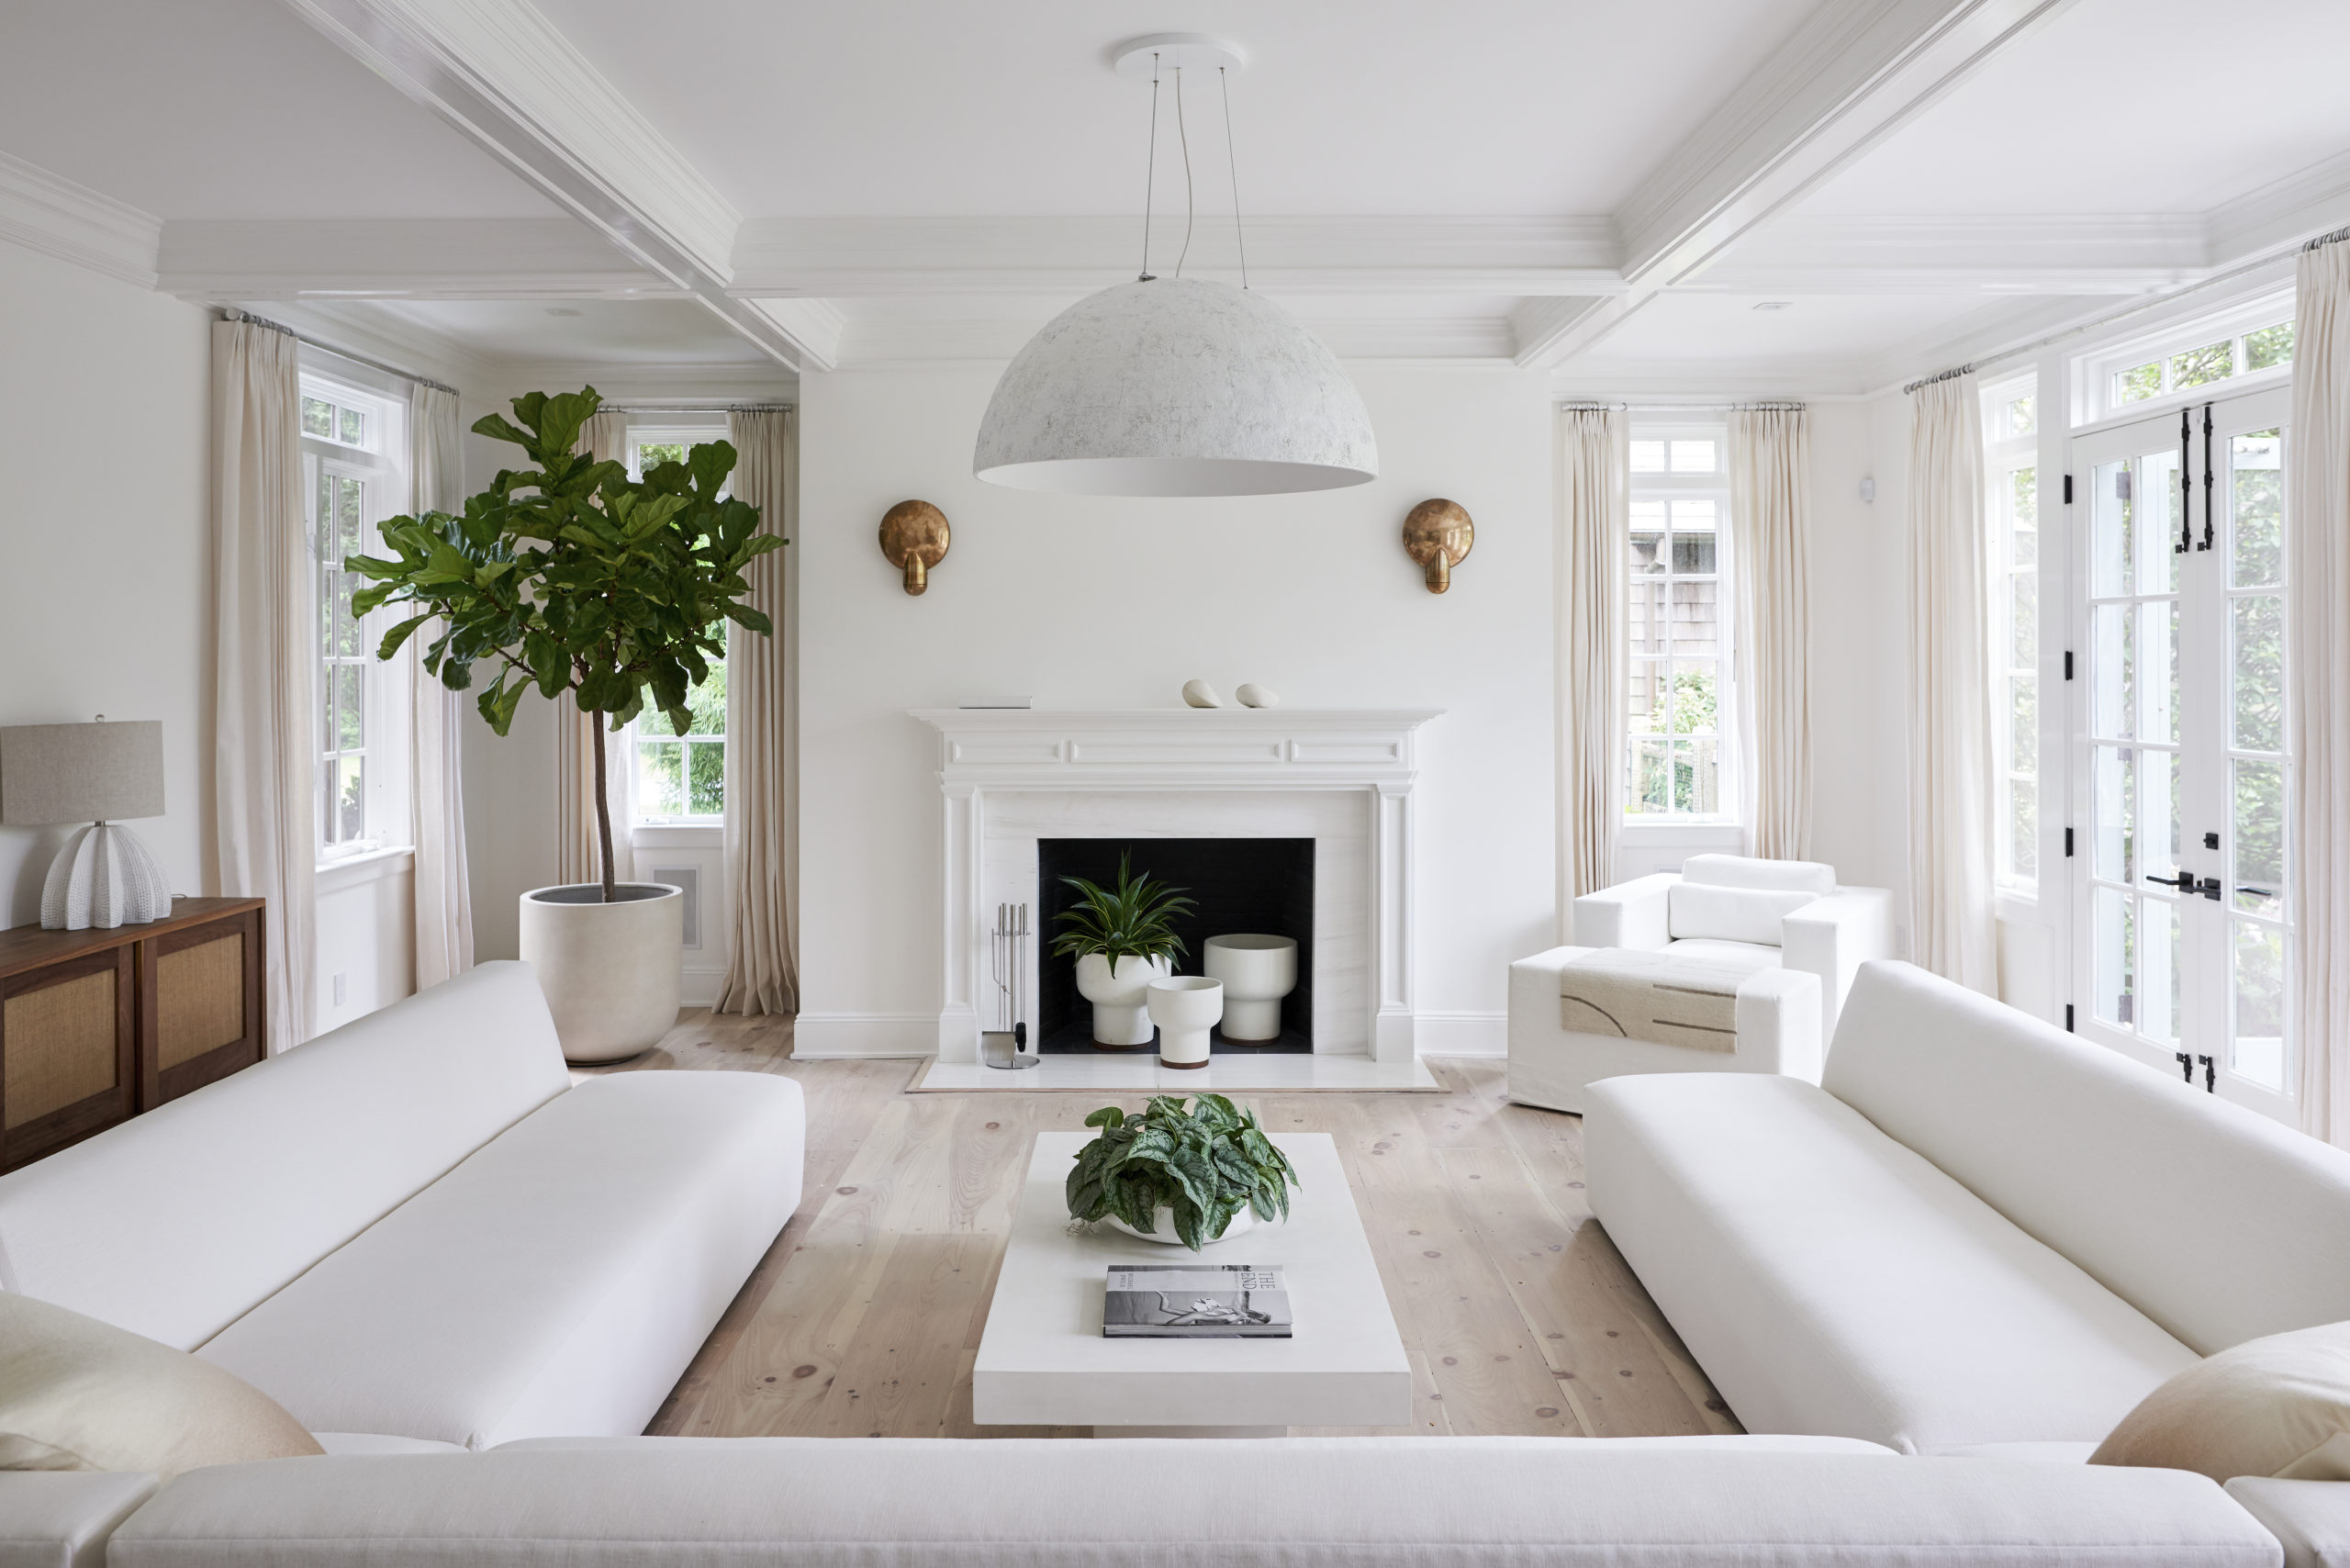 A Hamptons home designed by Timothy Godbold.